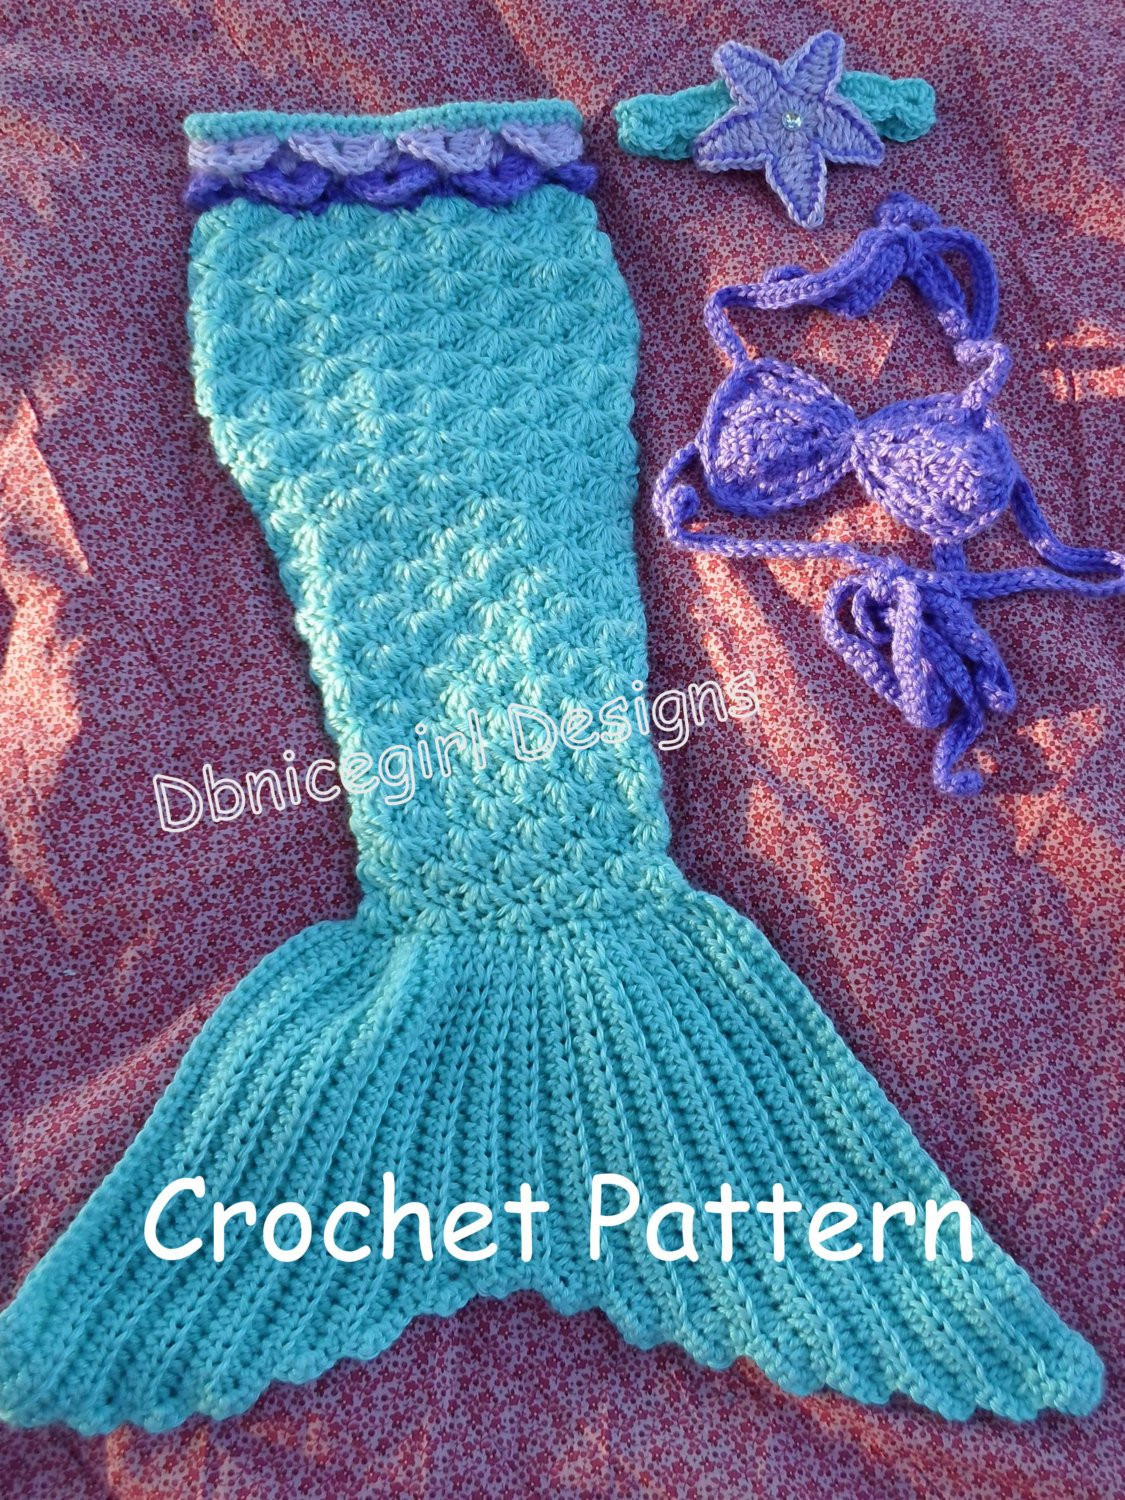 Crochet Mermaid Outfit Fresh Mermaid Costume 4 Piece Set Crochet Pattern Of Contemporary 36 Photos Crochet Mermaid Outfit